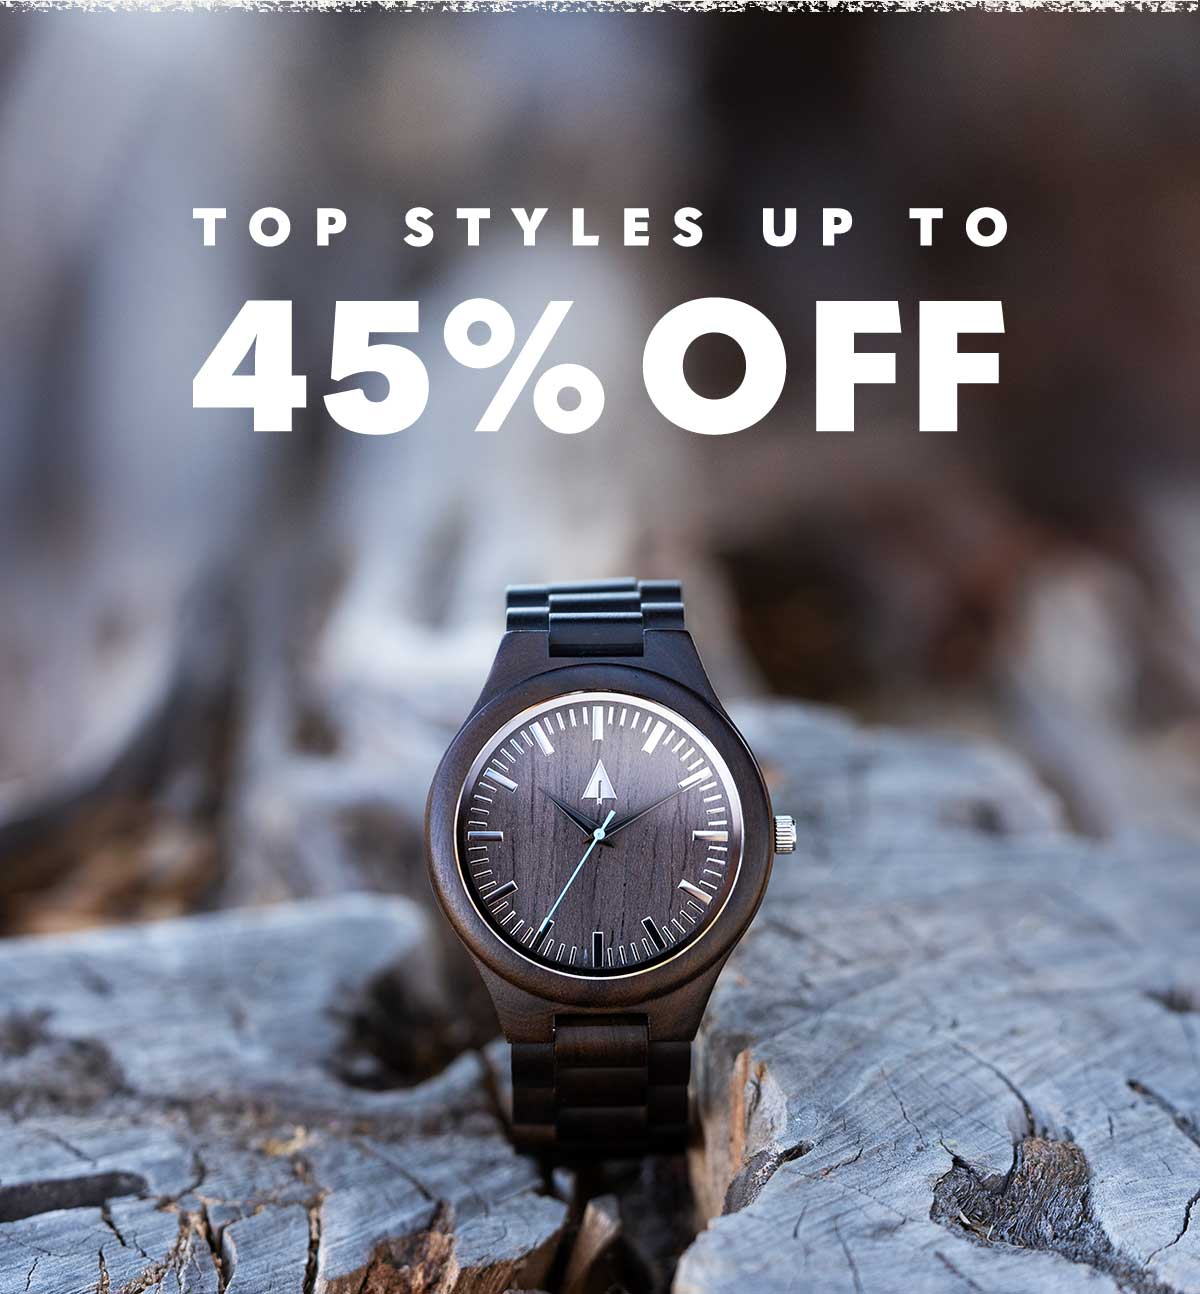 TOP STYLES UP TO 45% OFF